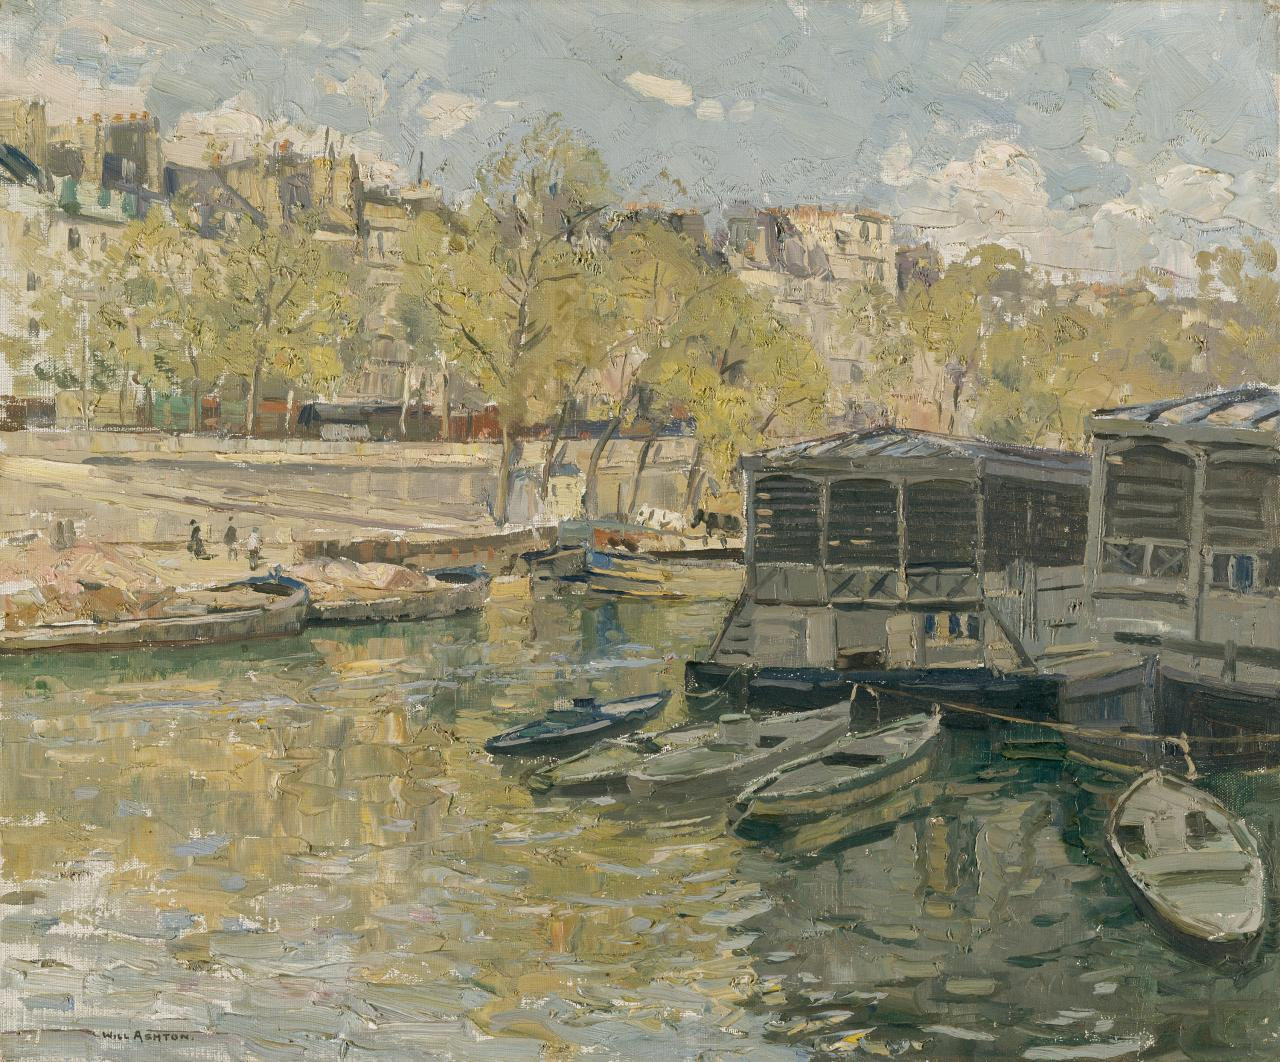 Laundry boats on the Seine